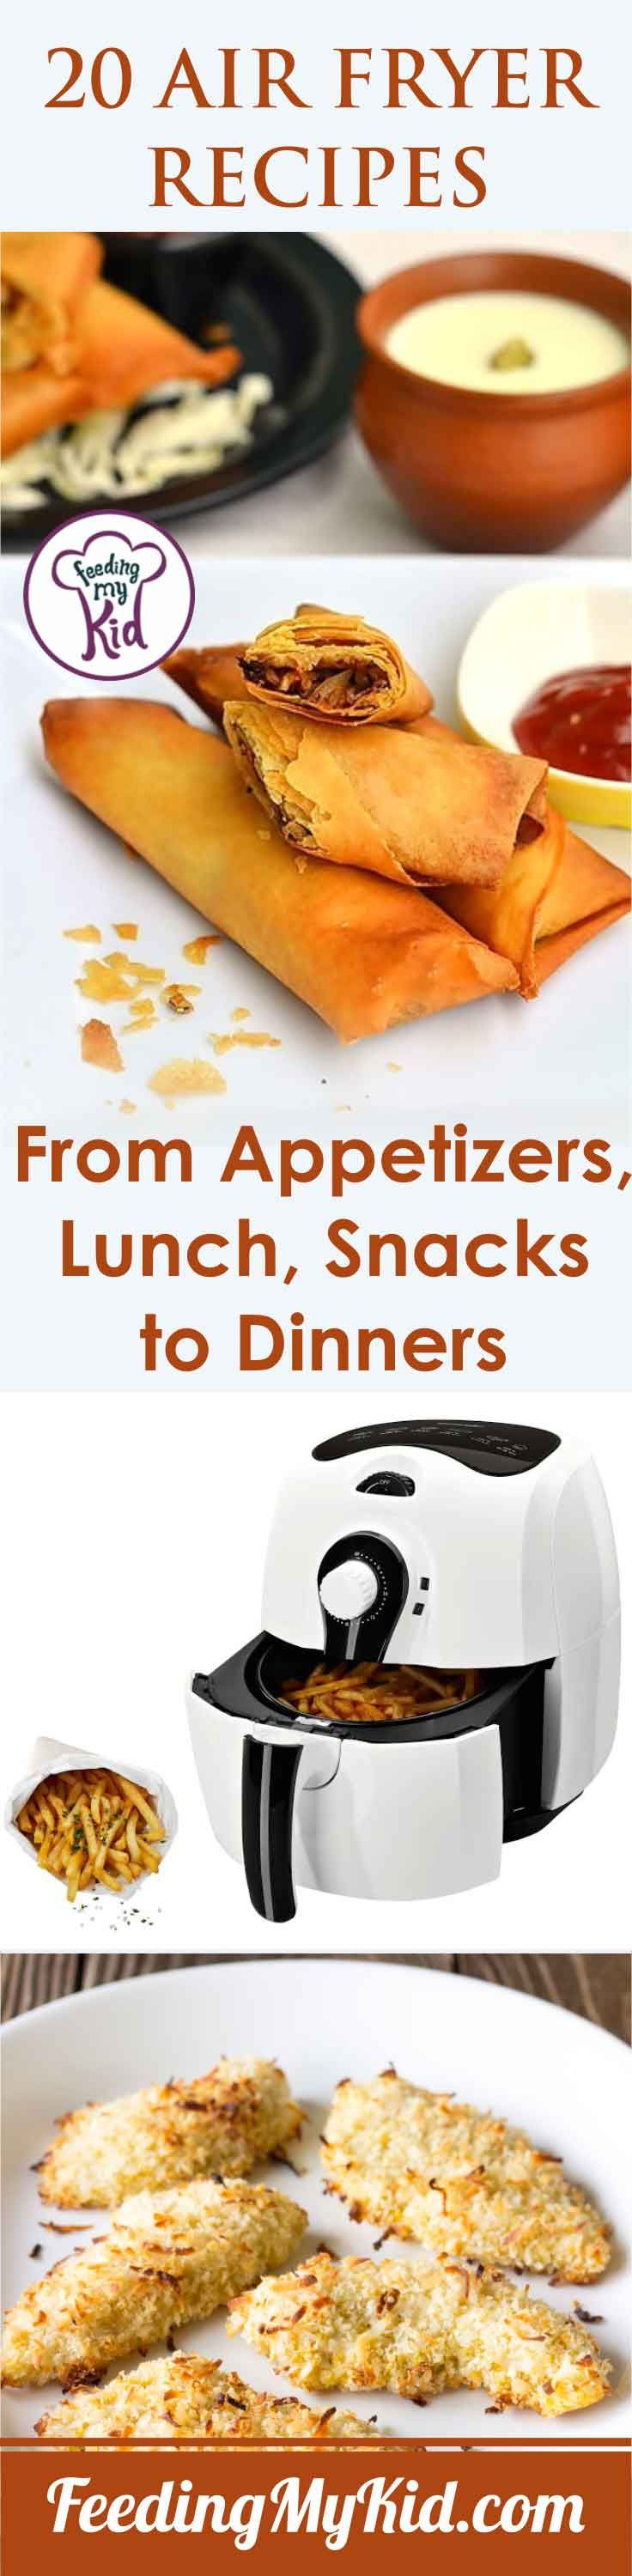 Healthify your fried foods with an air fryer! These healthy air fryer recipes will satisfy your craving for those crispy fried foods.